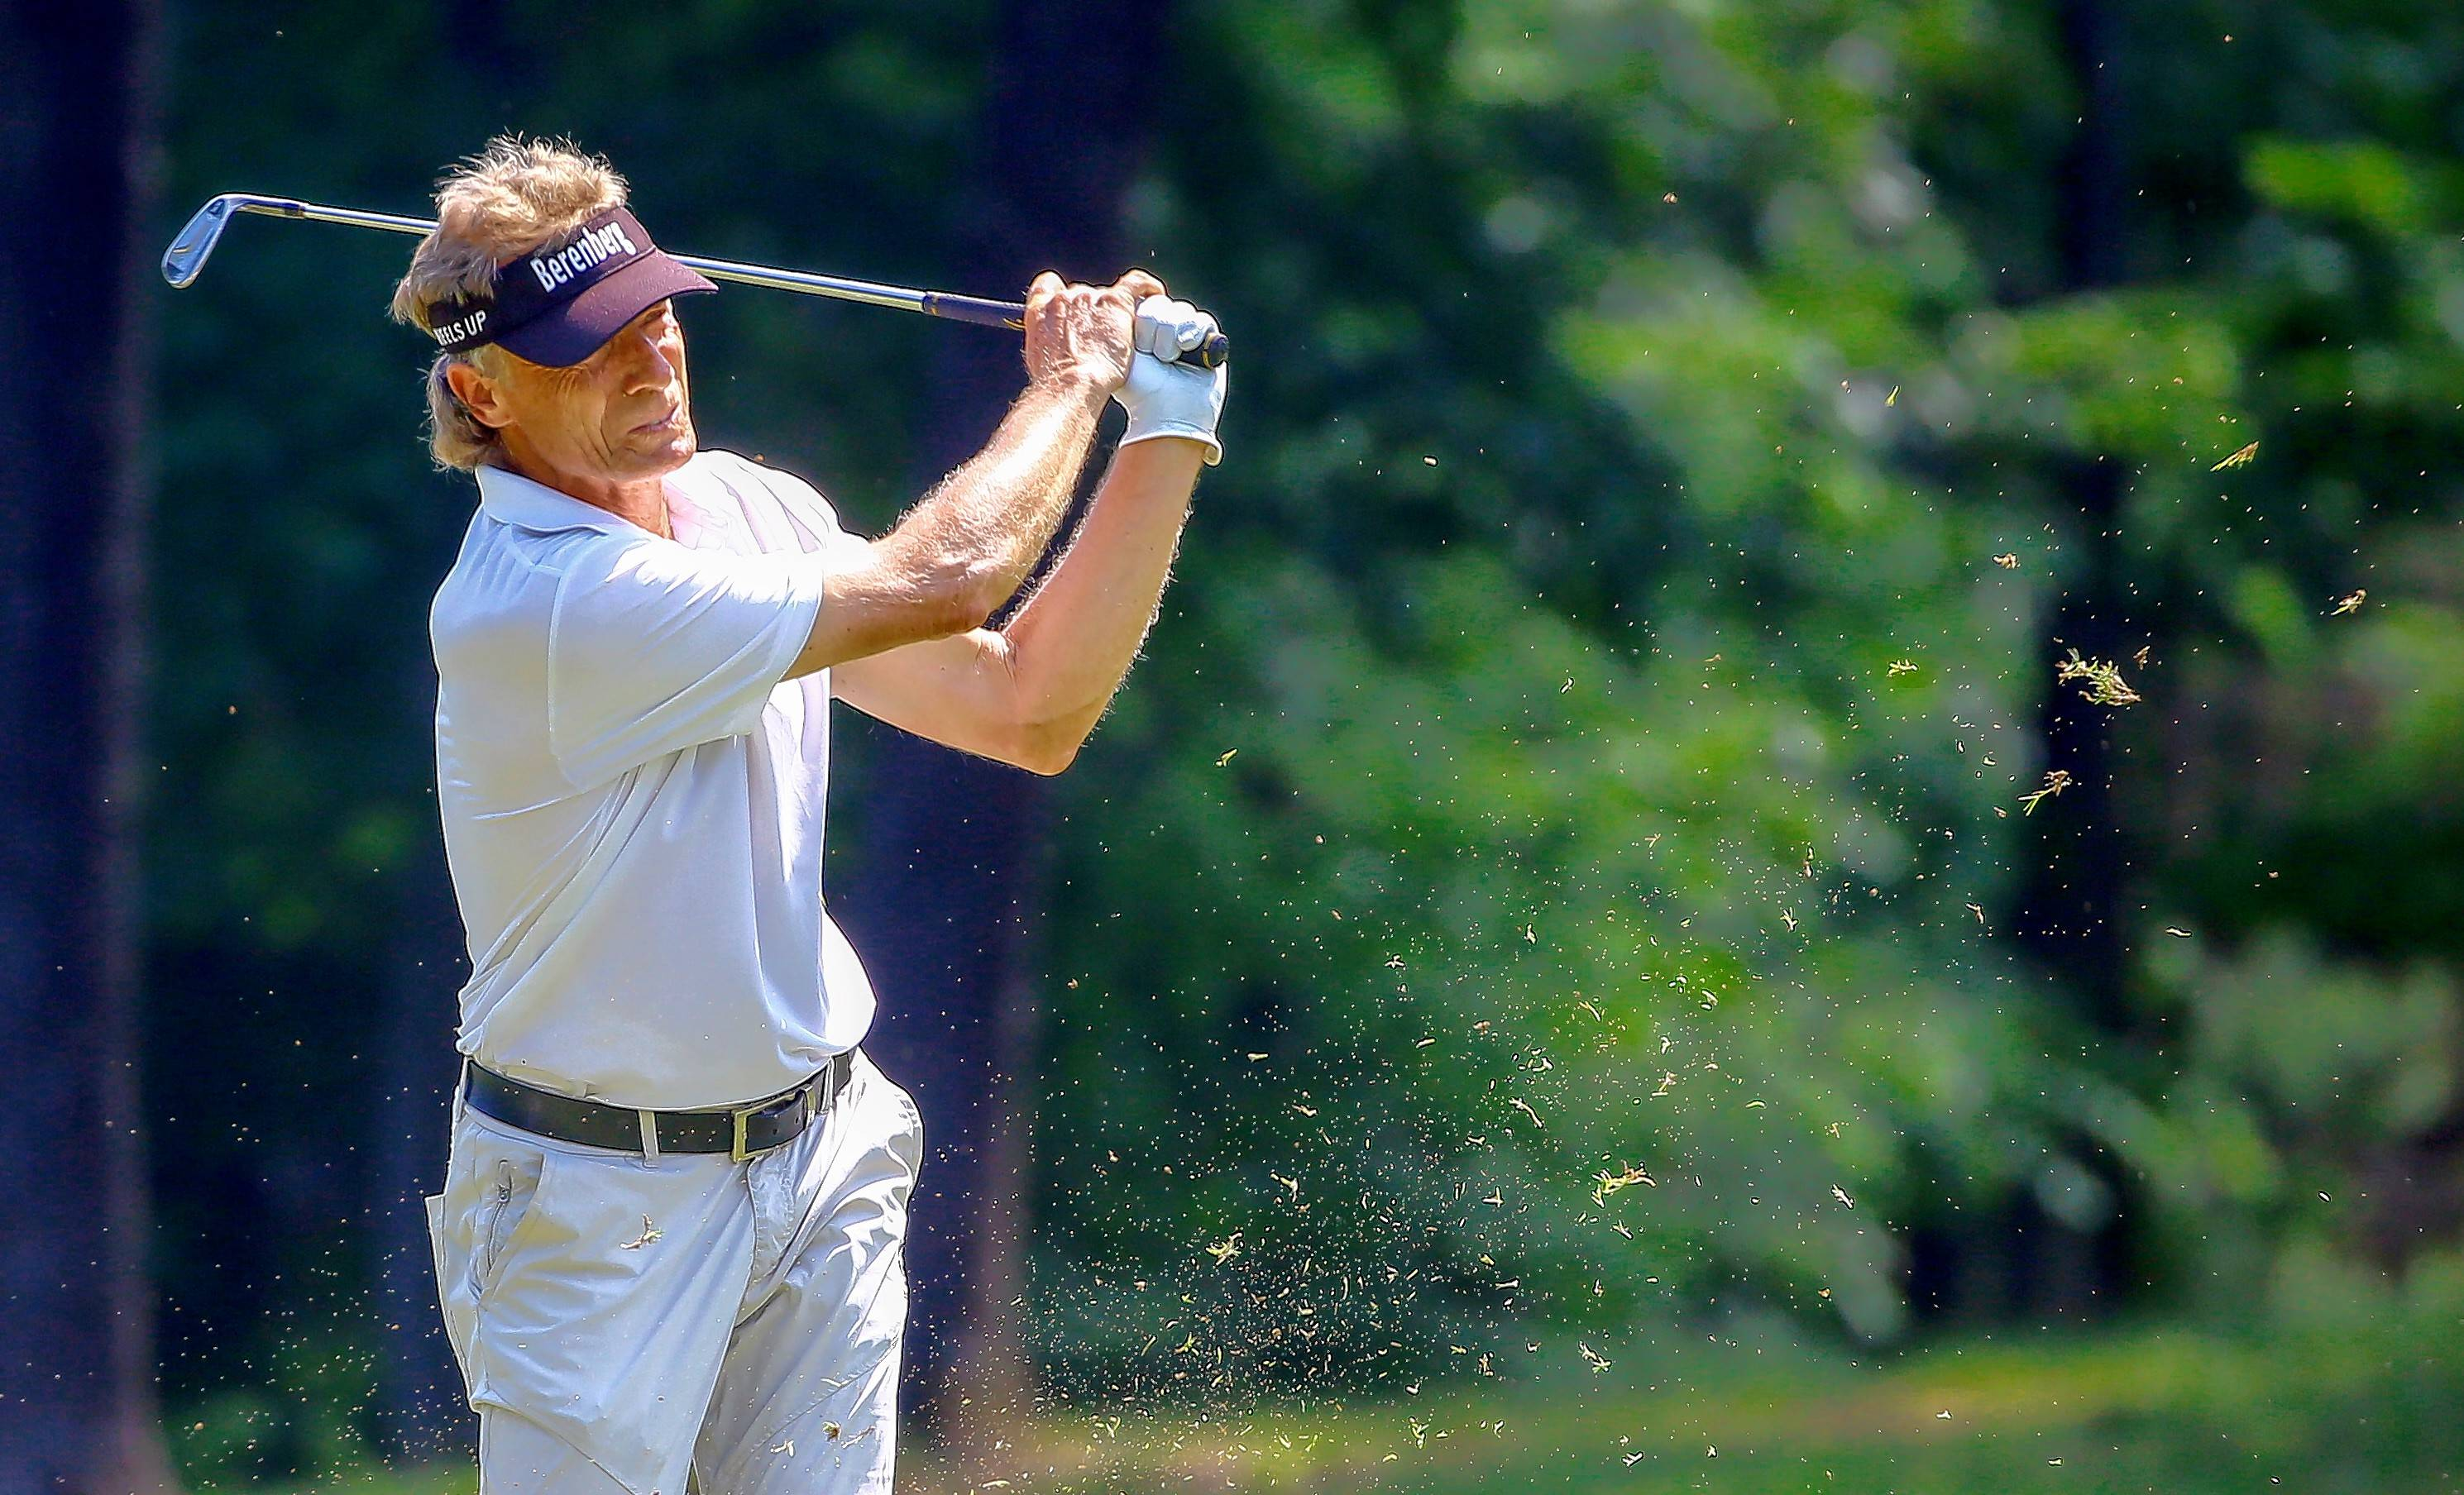 Bernhard Langer finished 11th at the Regions Tradition tournament on Sunday in Birmingham, Ala. He'll miss the Senior PGA Championship in Michigan to attend his son's graduation.